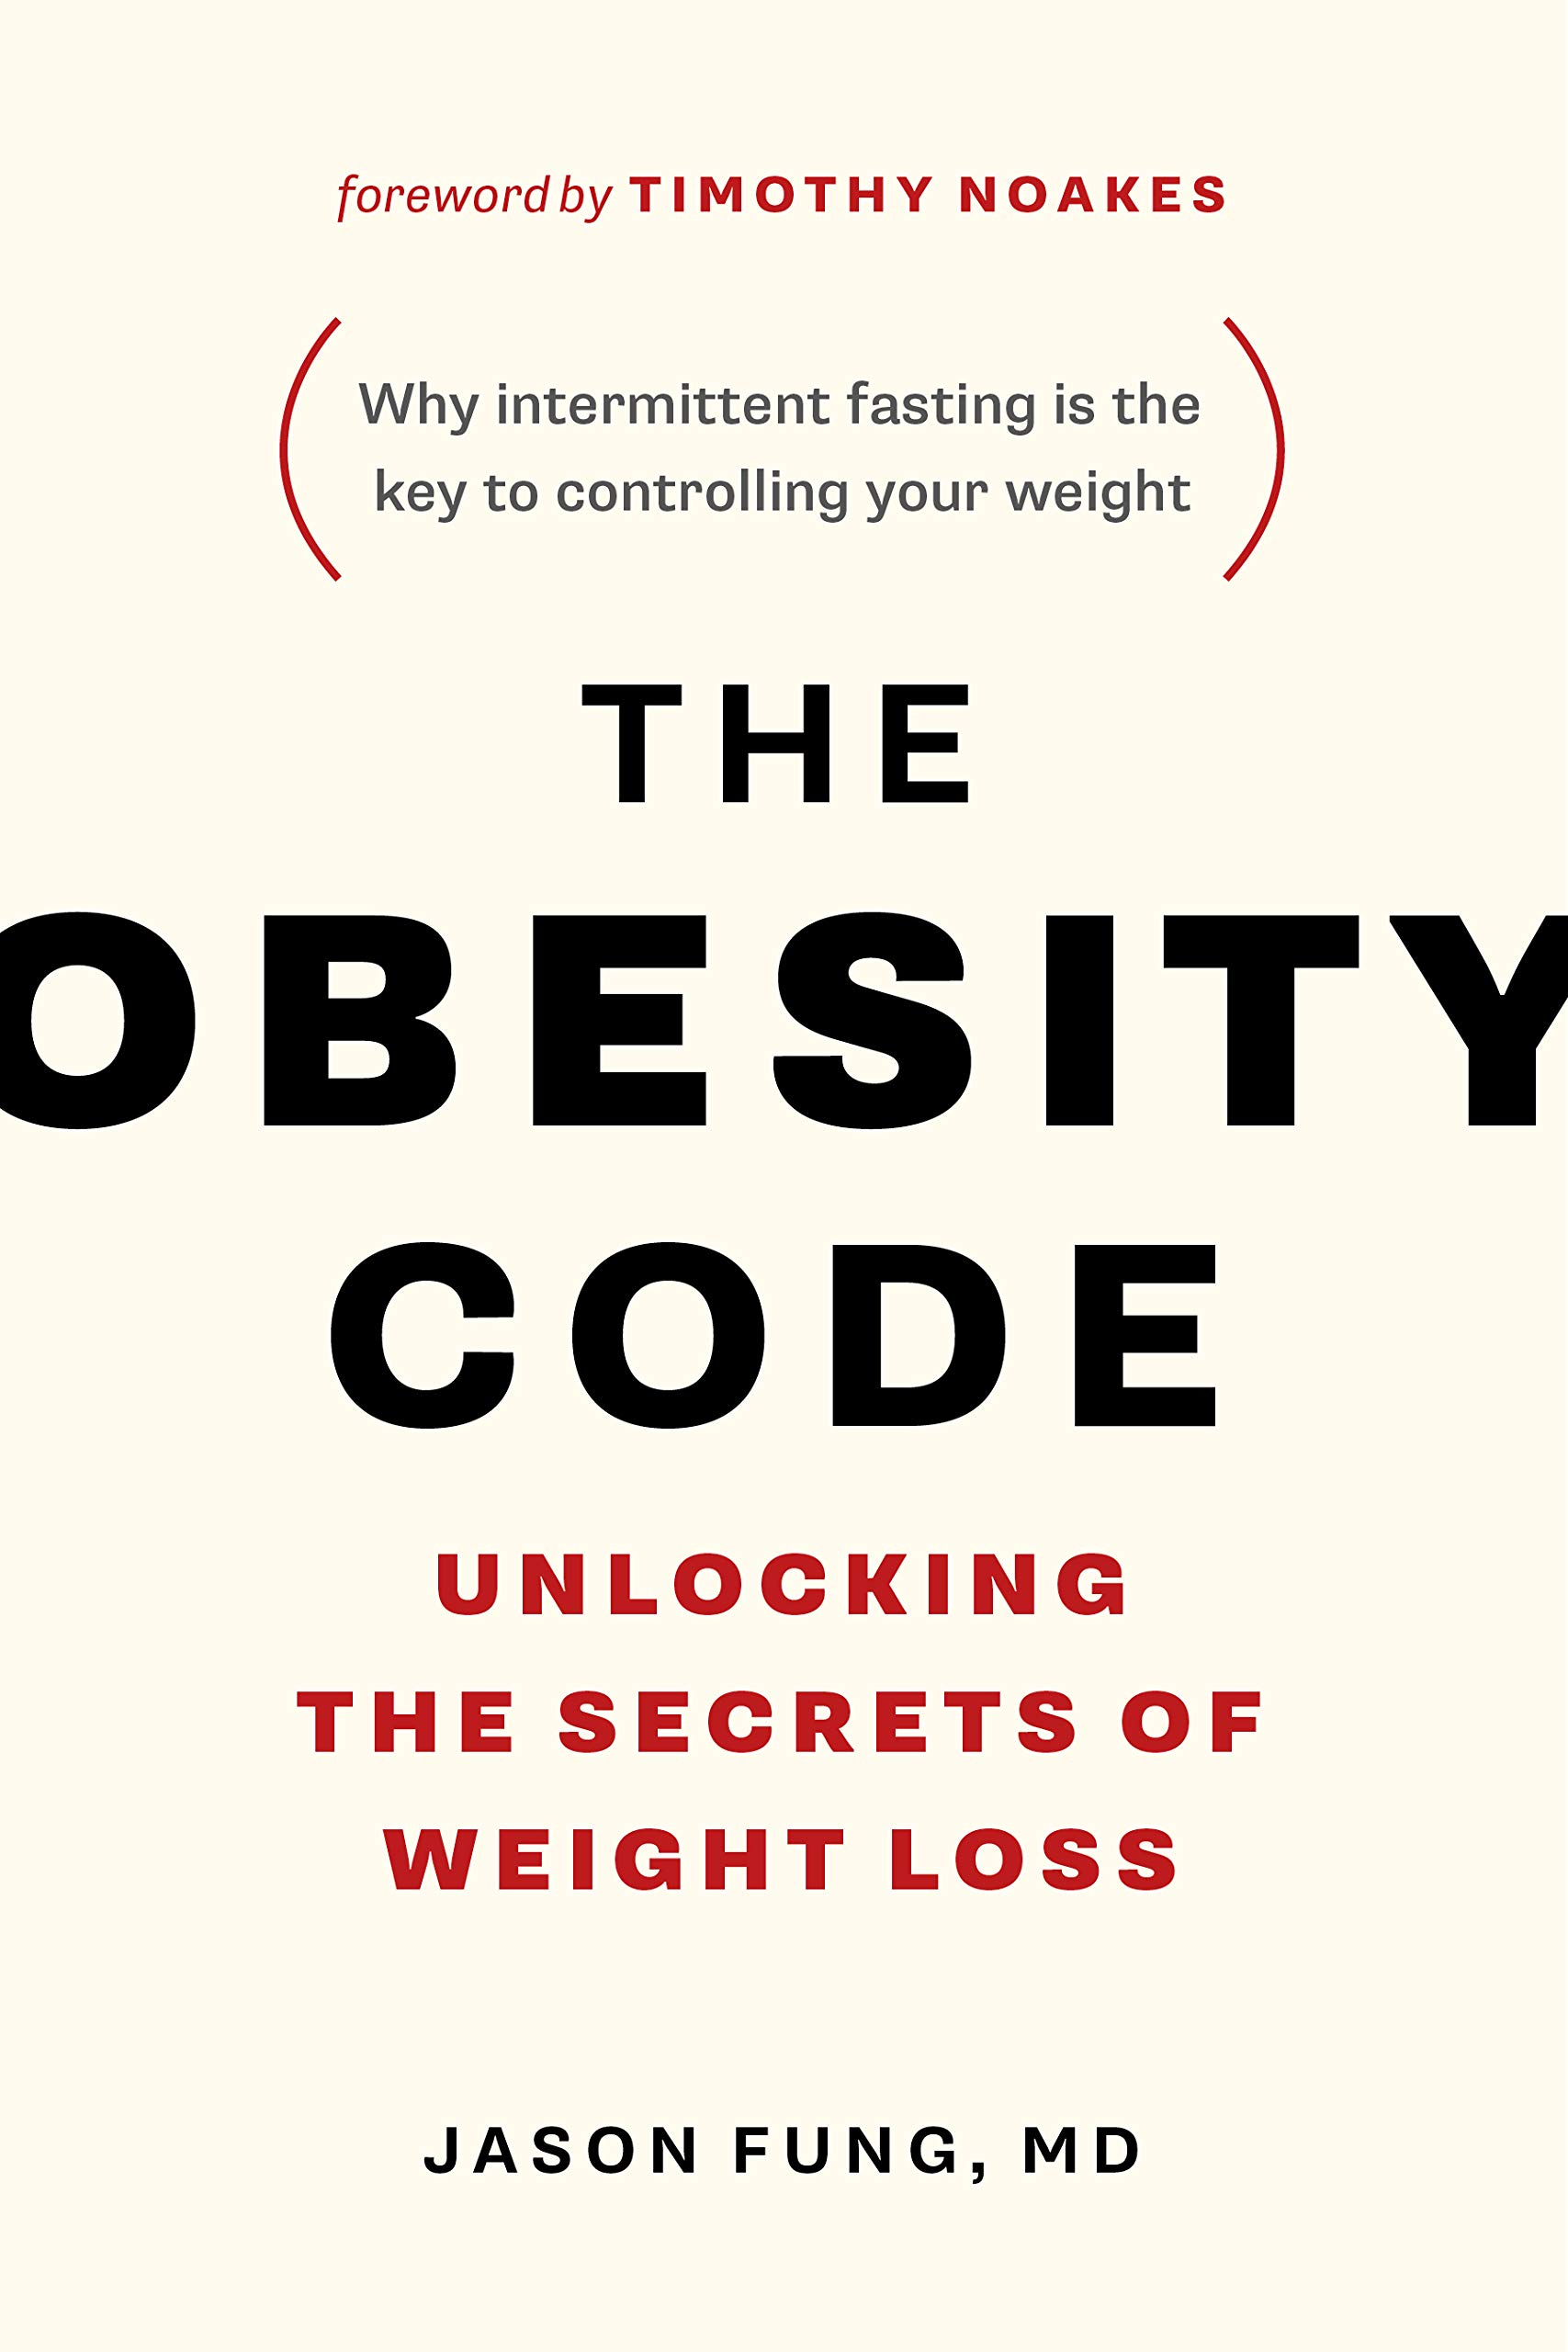 The Obesity Code: Unlocking the Secrets of Weight Loss (Why Intermittent Fasting Is the Key to Controlling Your Weight) (Book 1)